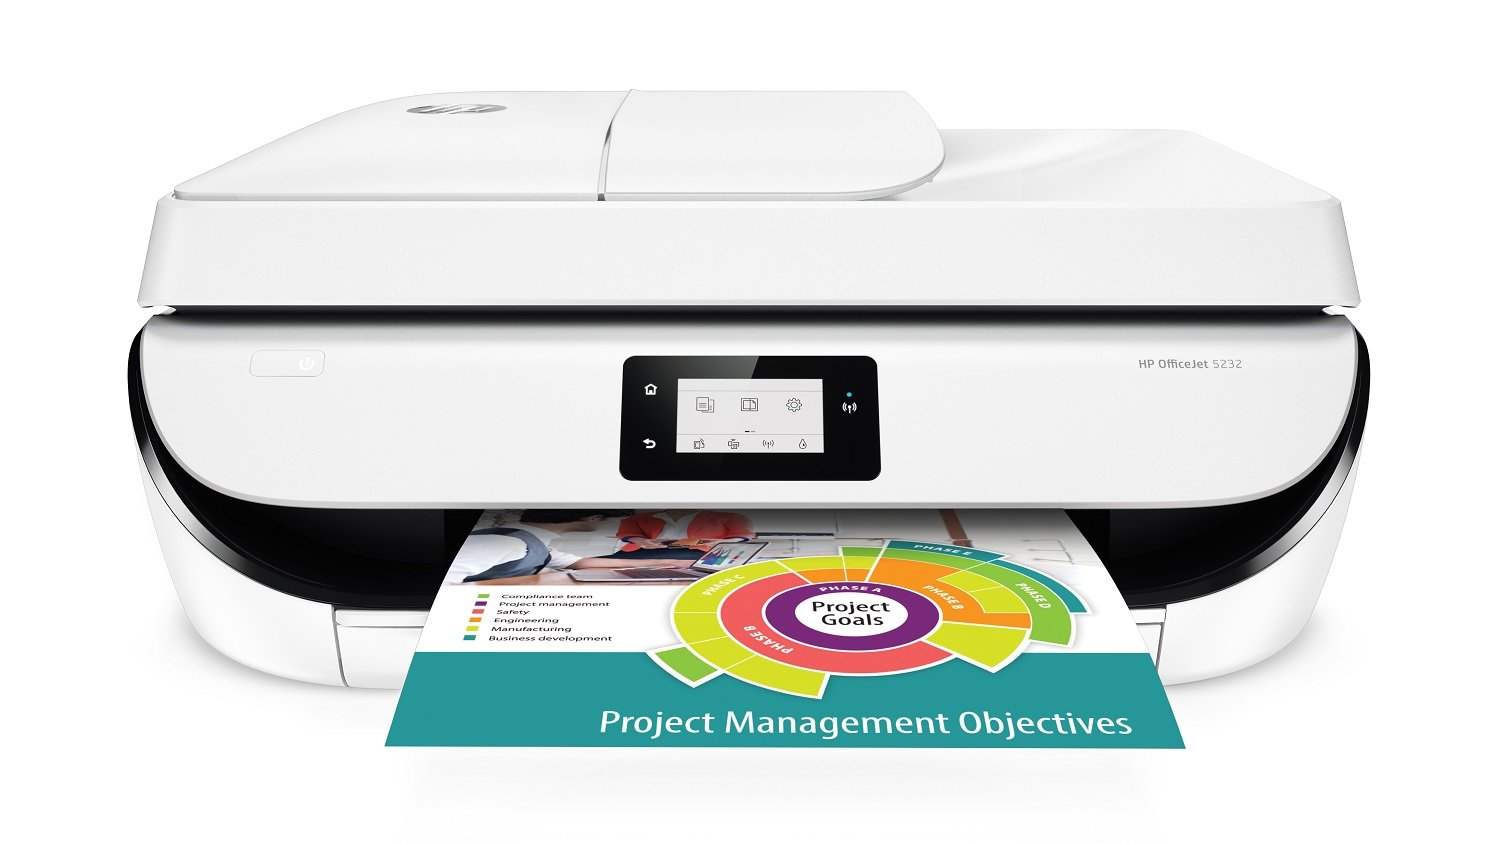 HP Officejet 5232 M2U84B